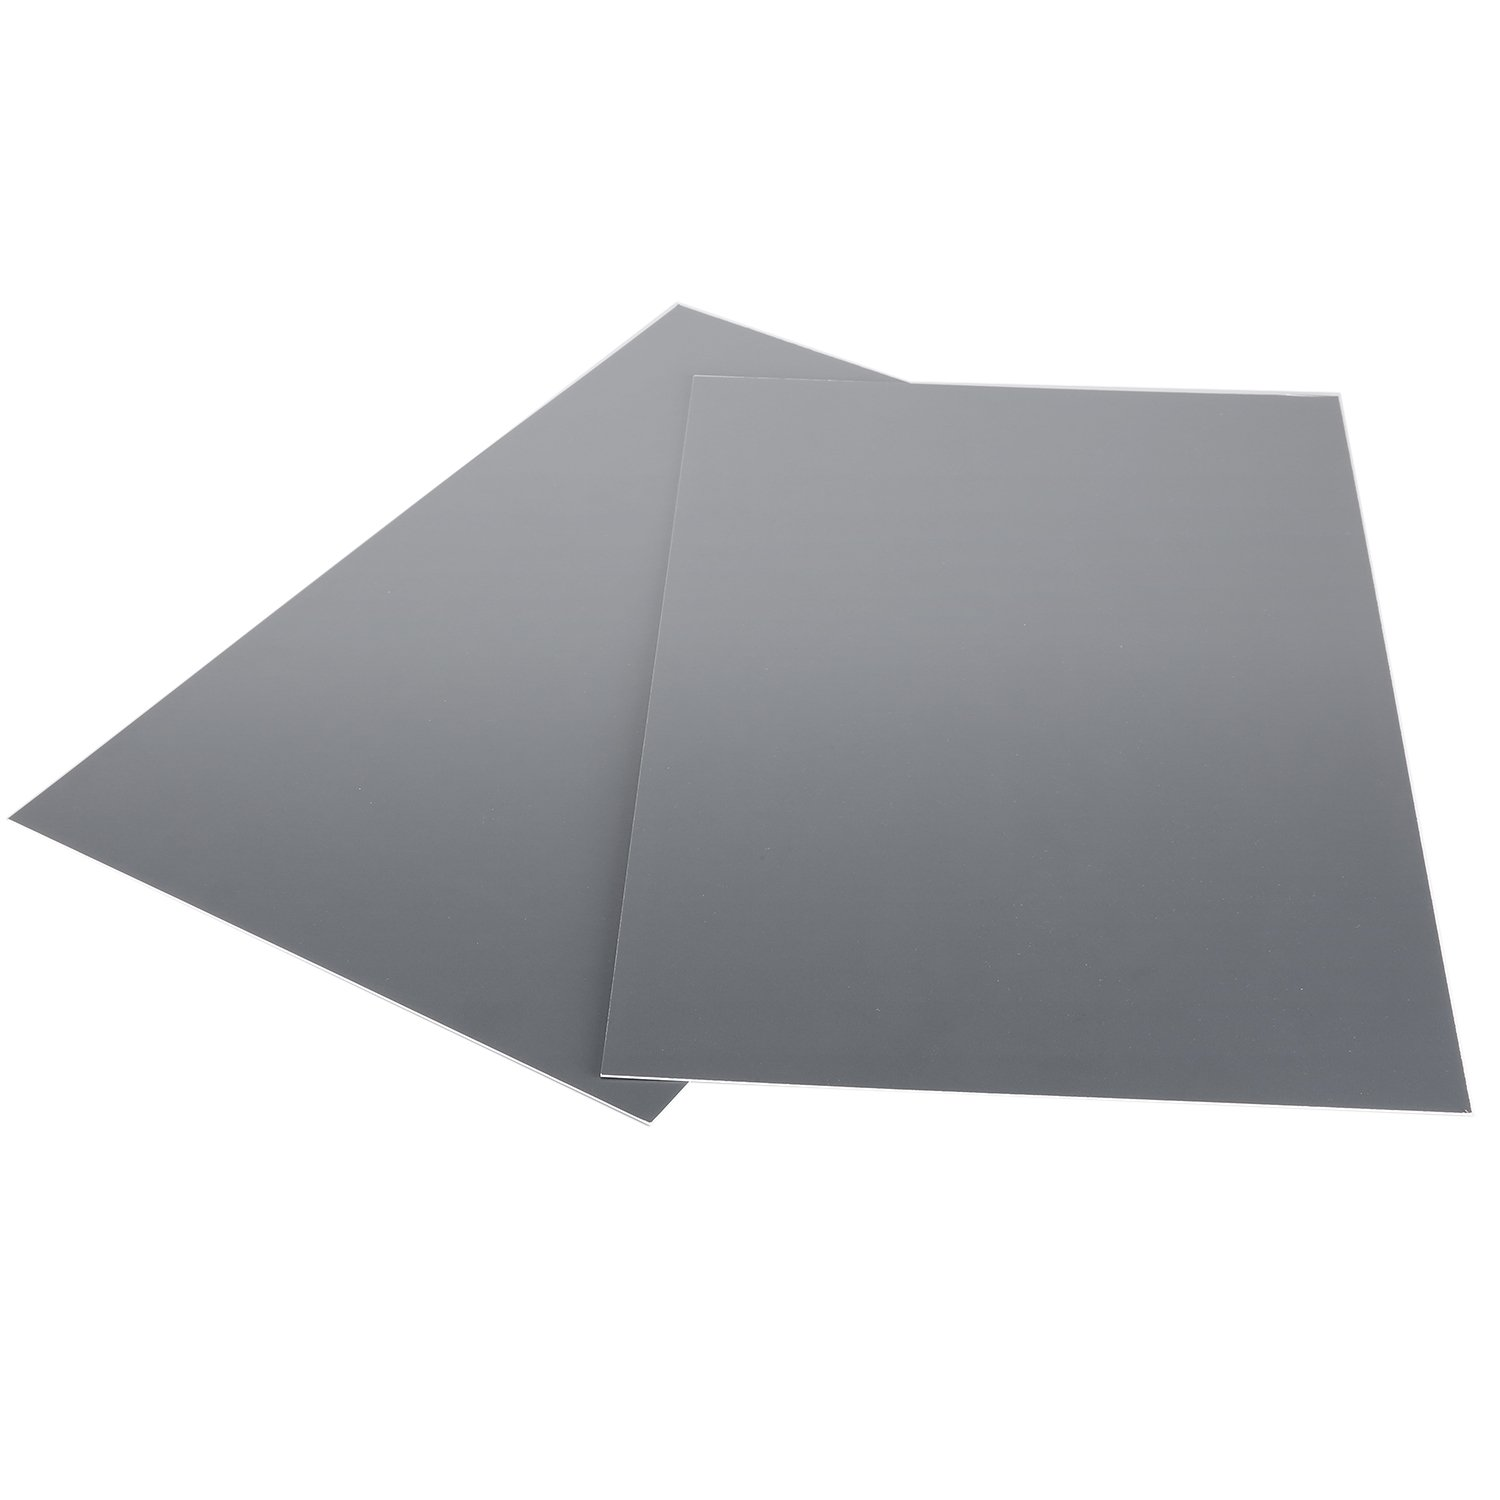 Neewer Extra Large Size 2 Gray Card Set, 19.2x9.84 inches/49x25centimeters Balance Card/Calibrated Reference Card for Digital and Film Photography by Neewer